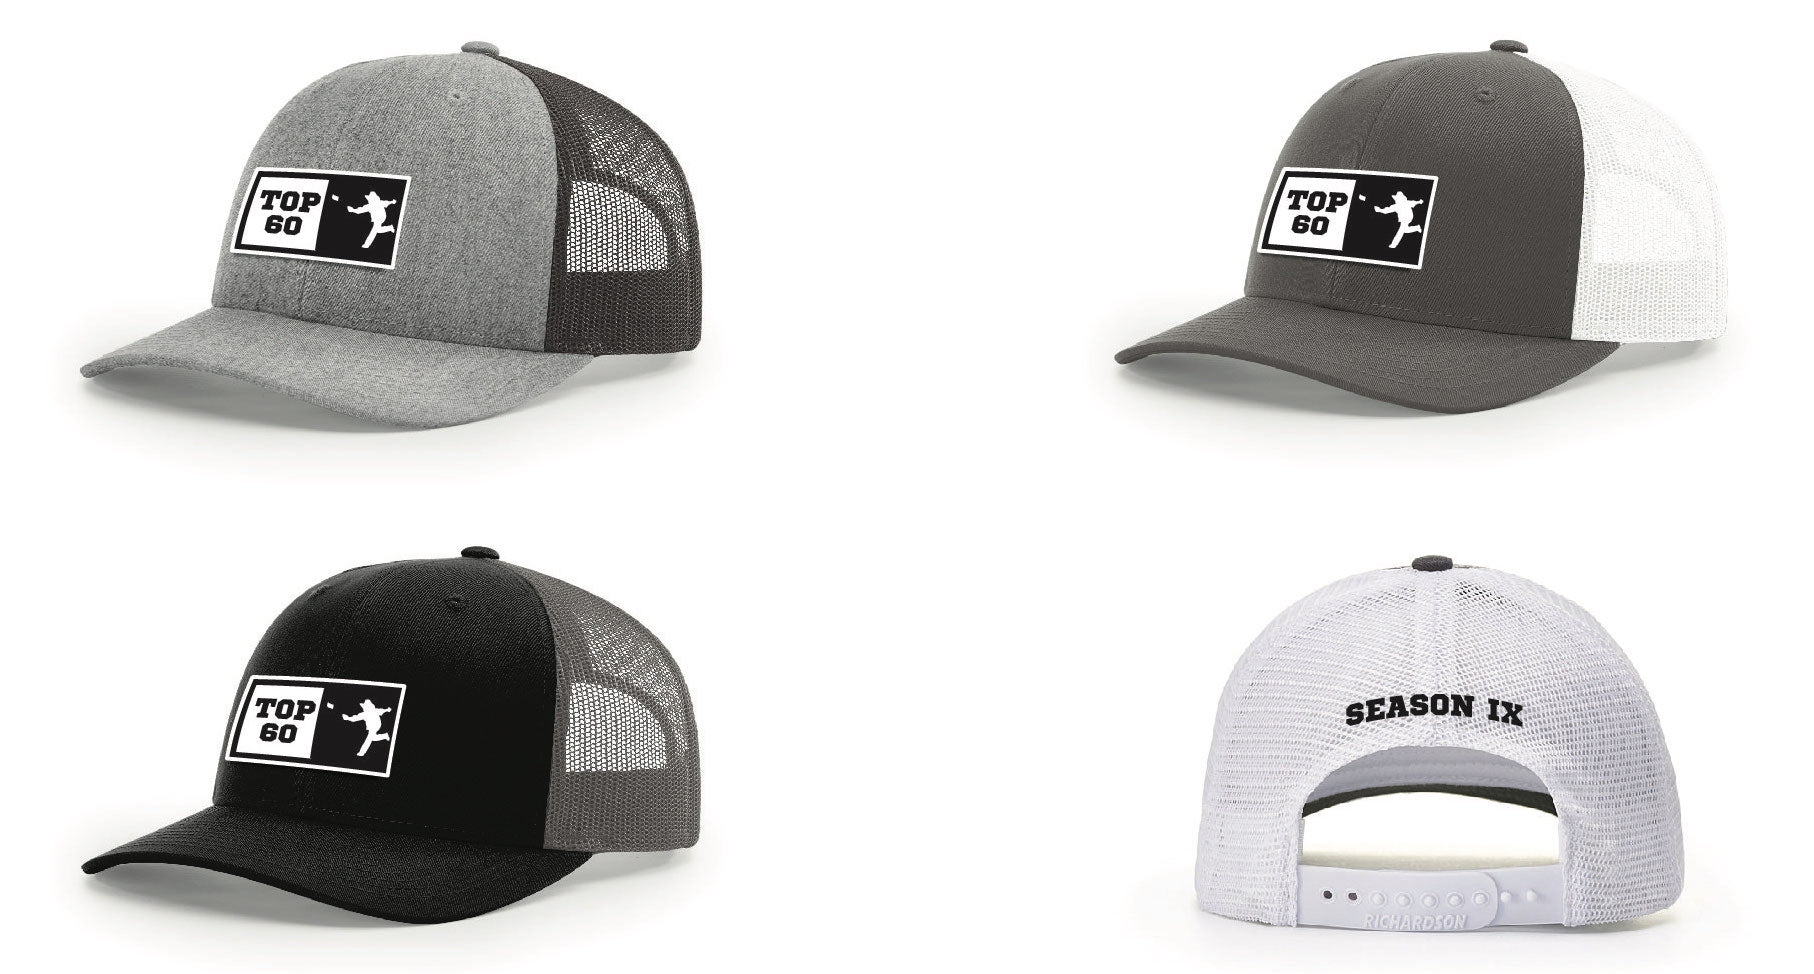 Top 60 - Richardson 115 Trucker Hat